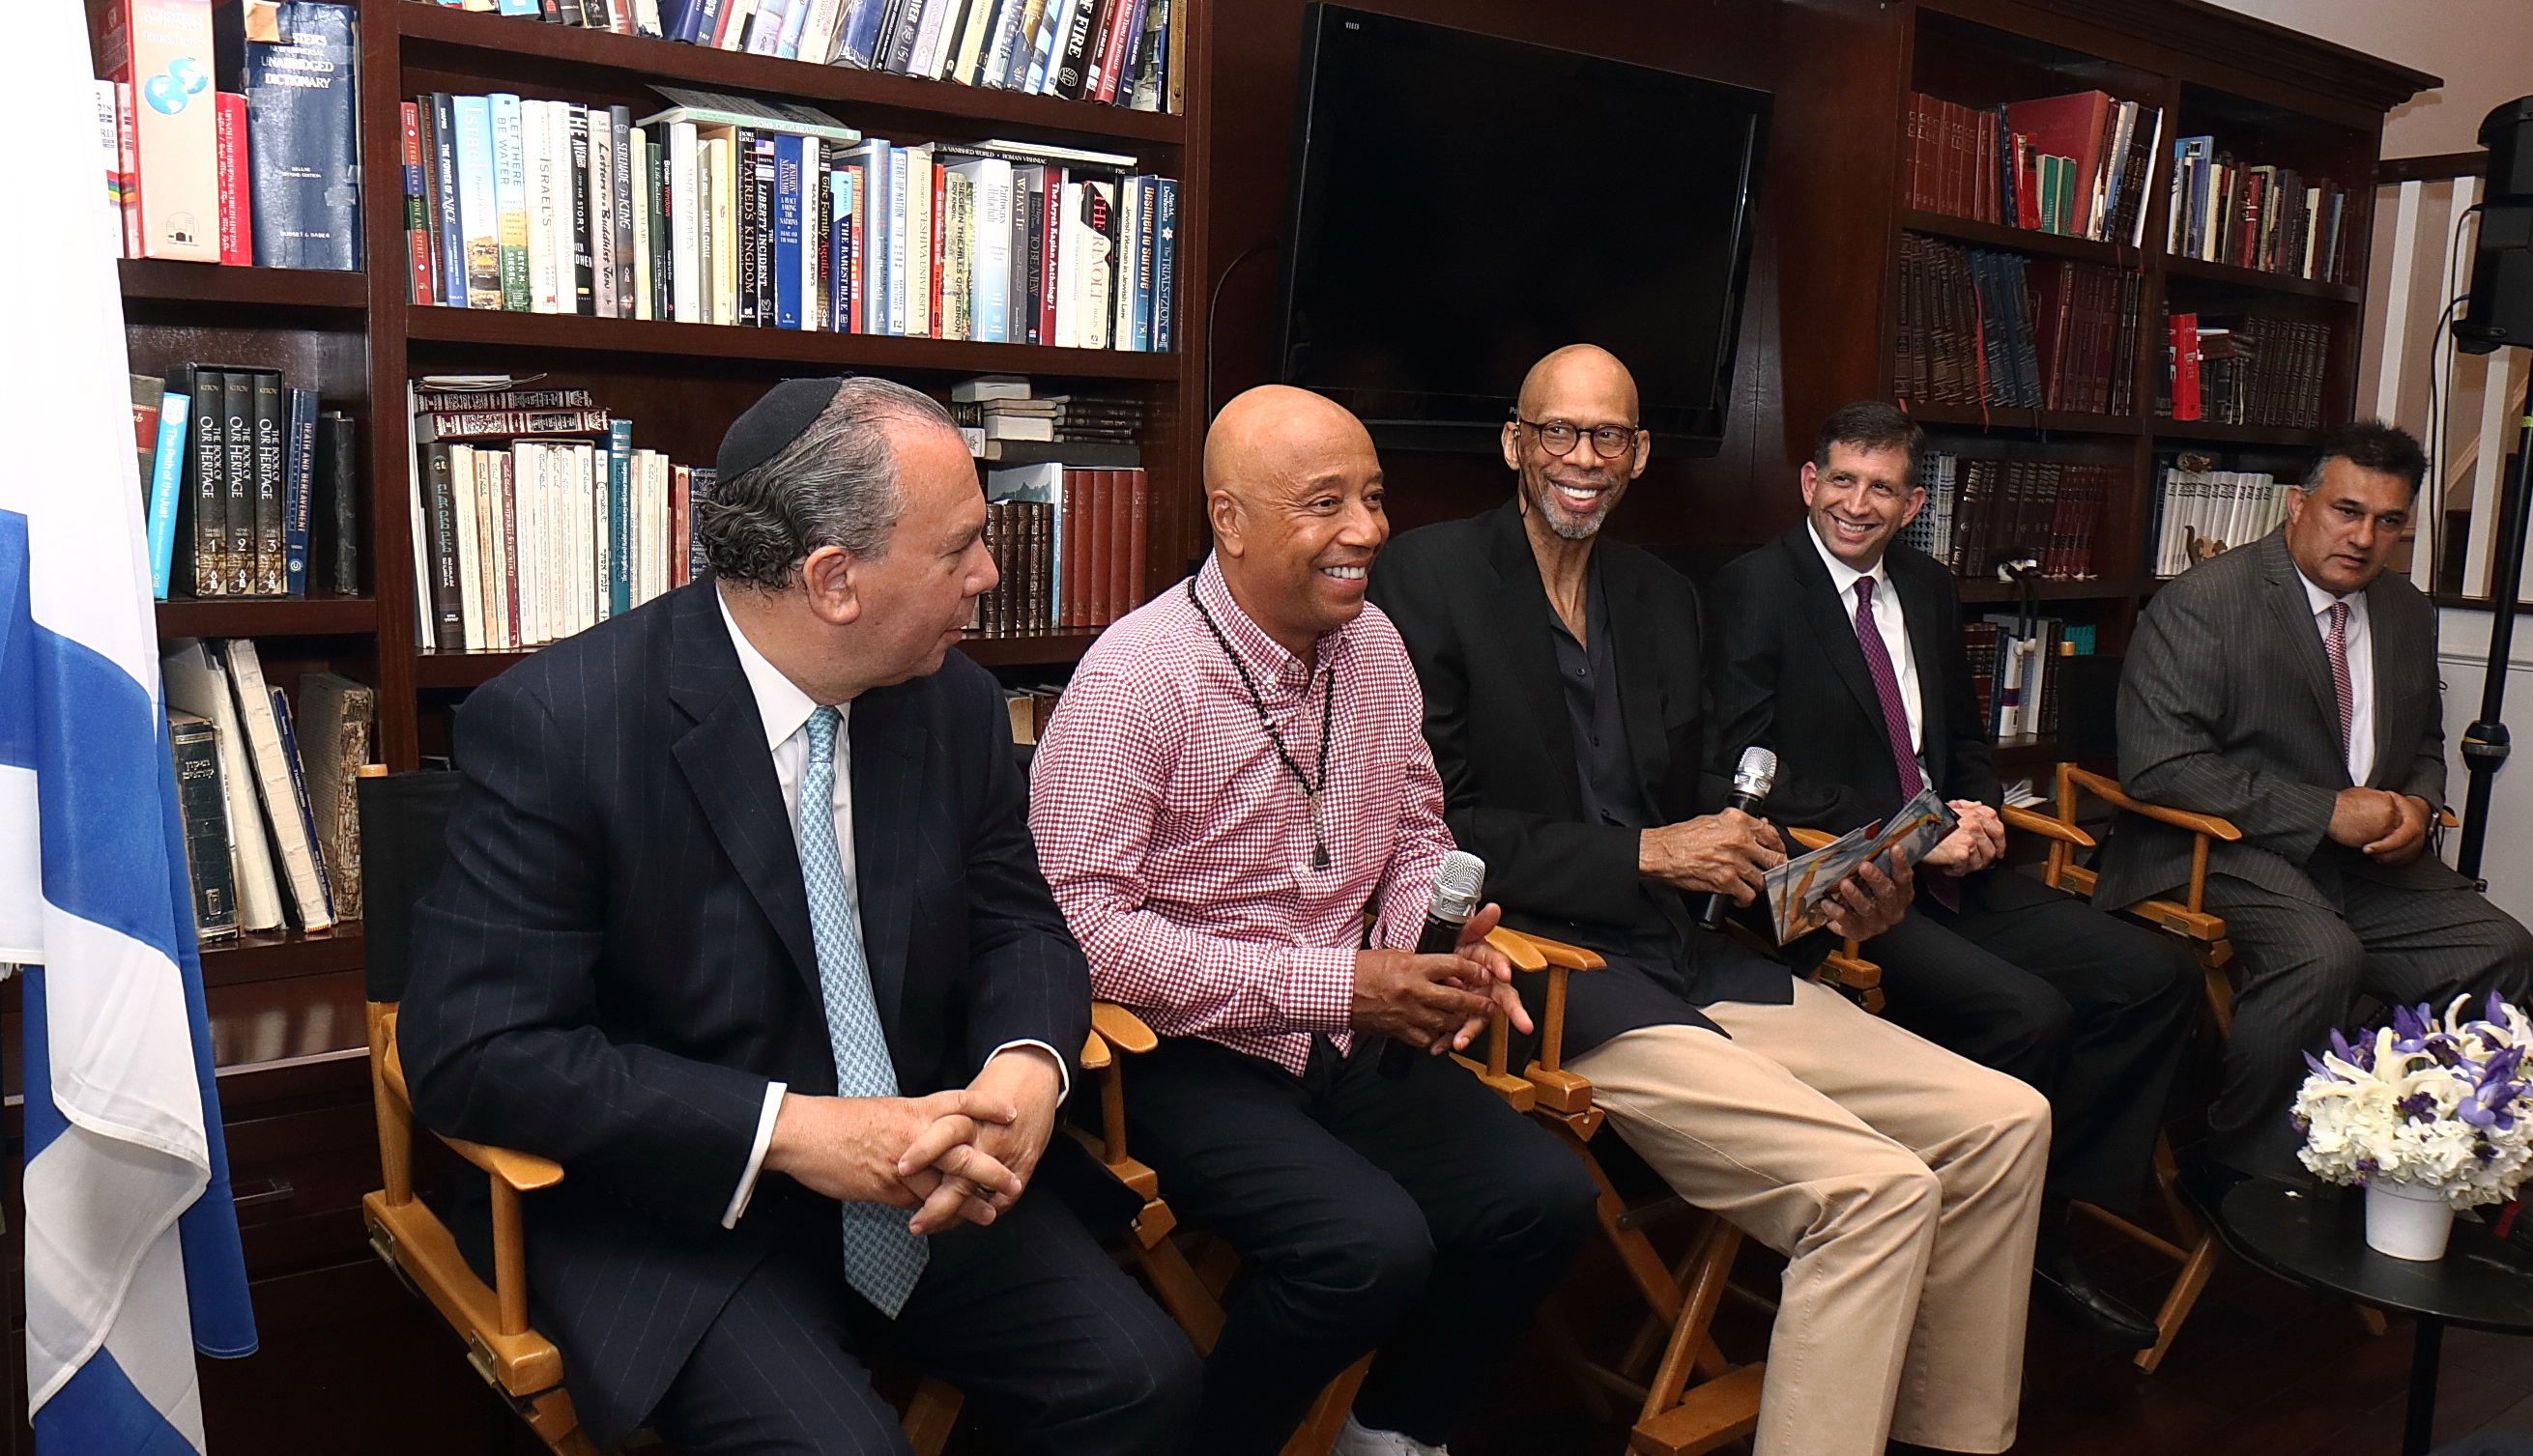 In the photo (Left To Right): Rabbi Marc Schneier (President - Foundation for Ethnic Understanding), Russell Simmons (Chairman - Foundation for Ethnic Understanding), Kareem Abdul-Jabbar, Consul General Sam Grundwerg, Mahomed Akbar Khan (Muslim community activist). (Photo credit: Michelle Mivzari)